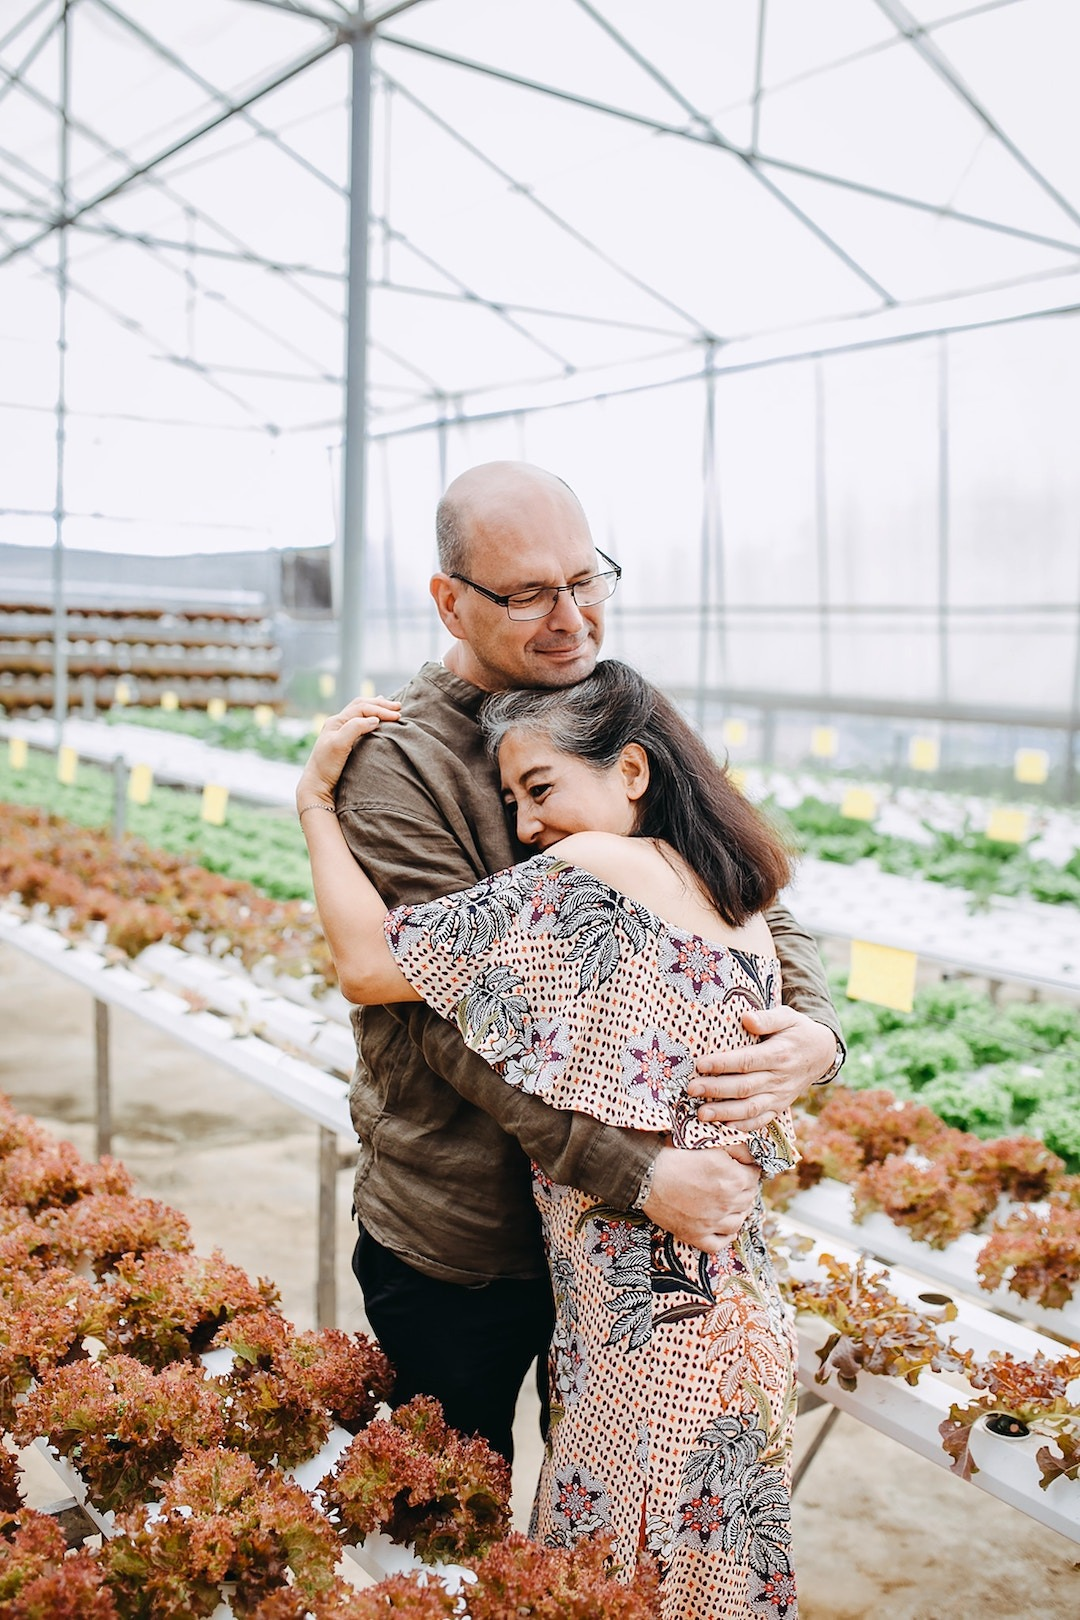 Couple hugging while in a green house after going through couple's therapy